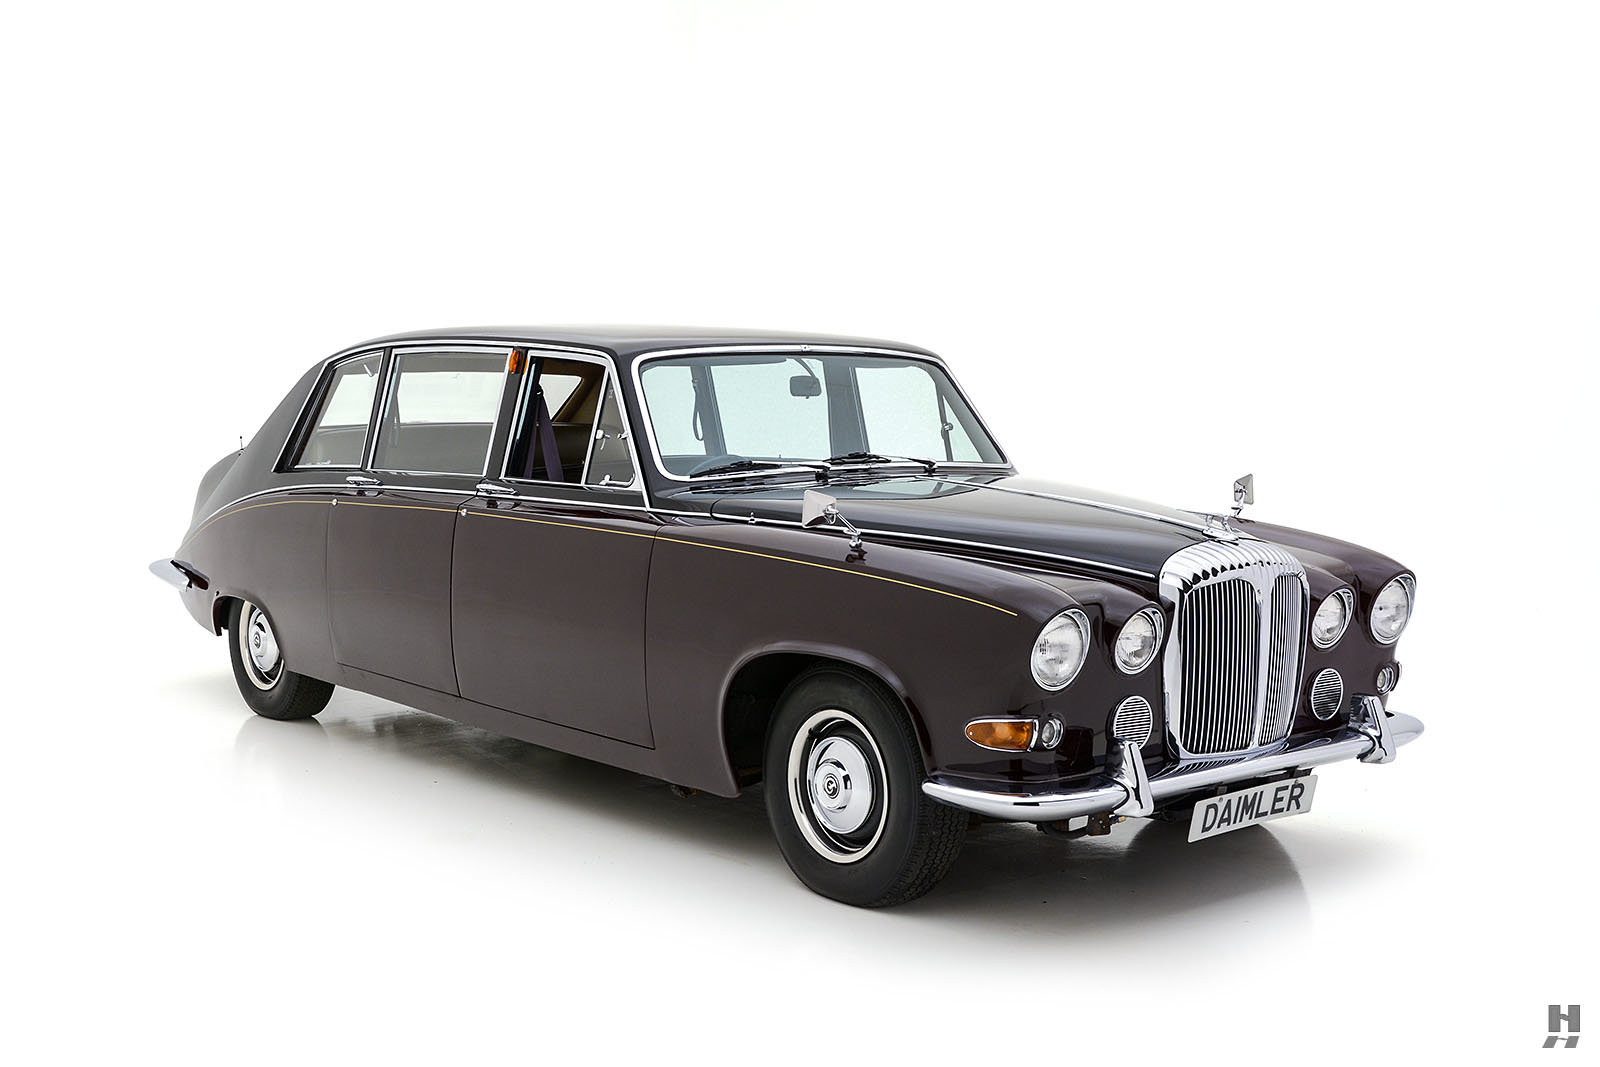 1976 DAIMLER DS420 LIMO For Sale (picture 2 of 6)